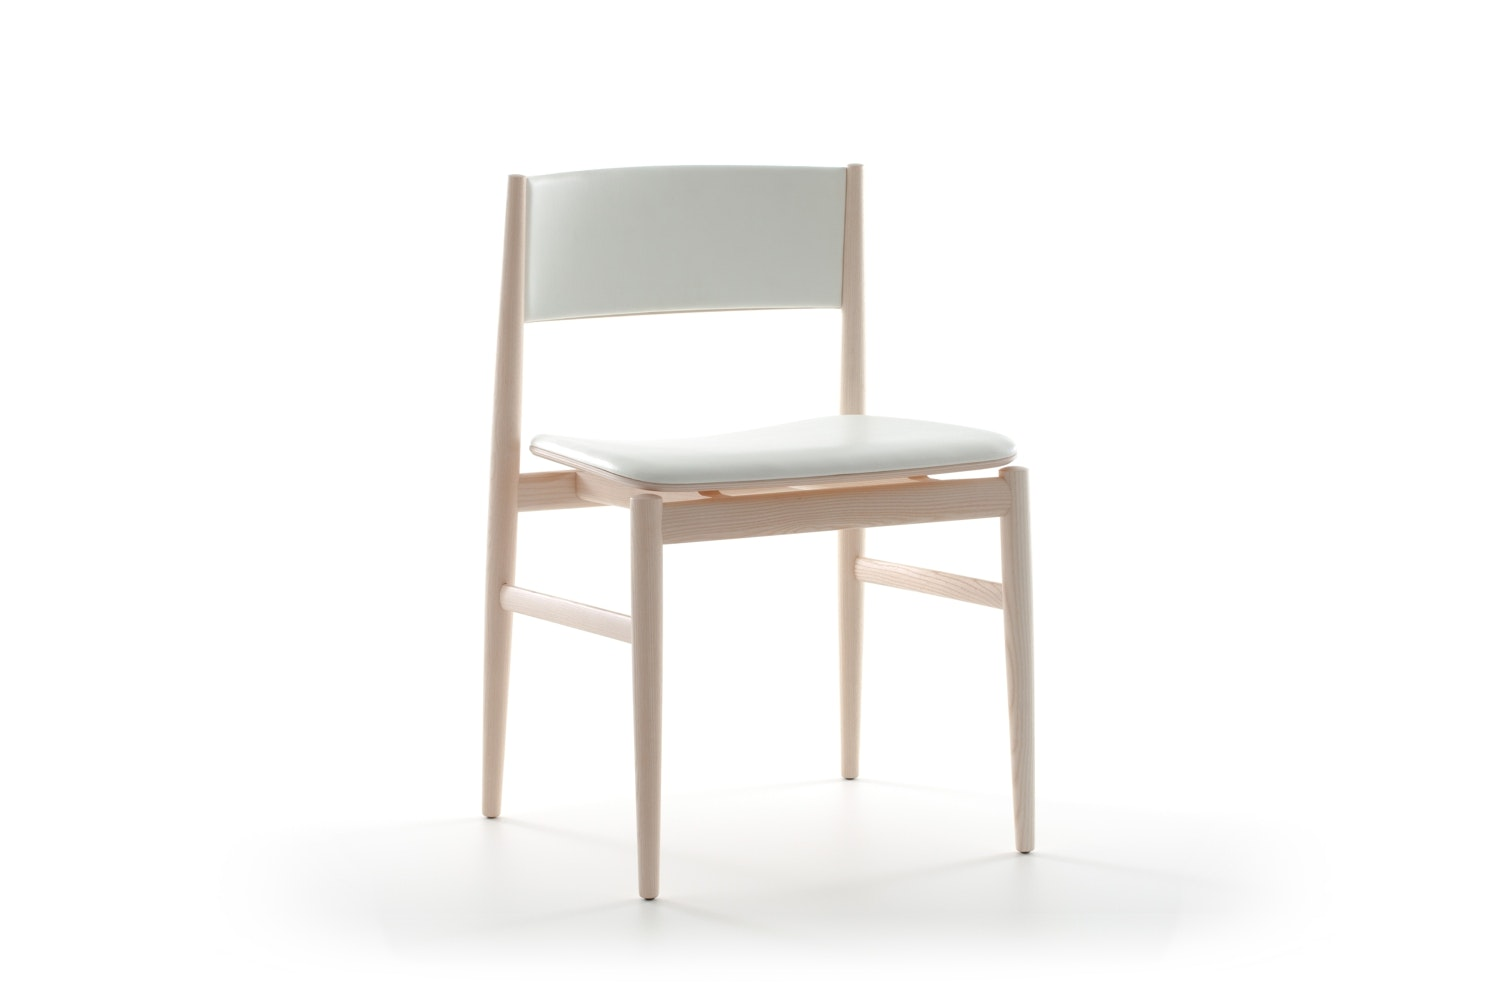 Neve Upholstered Chair by Piero Lissoni for Porro